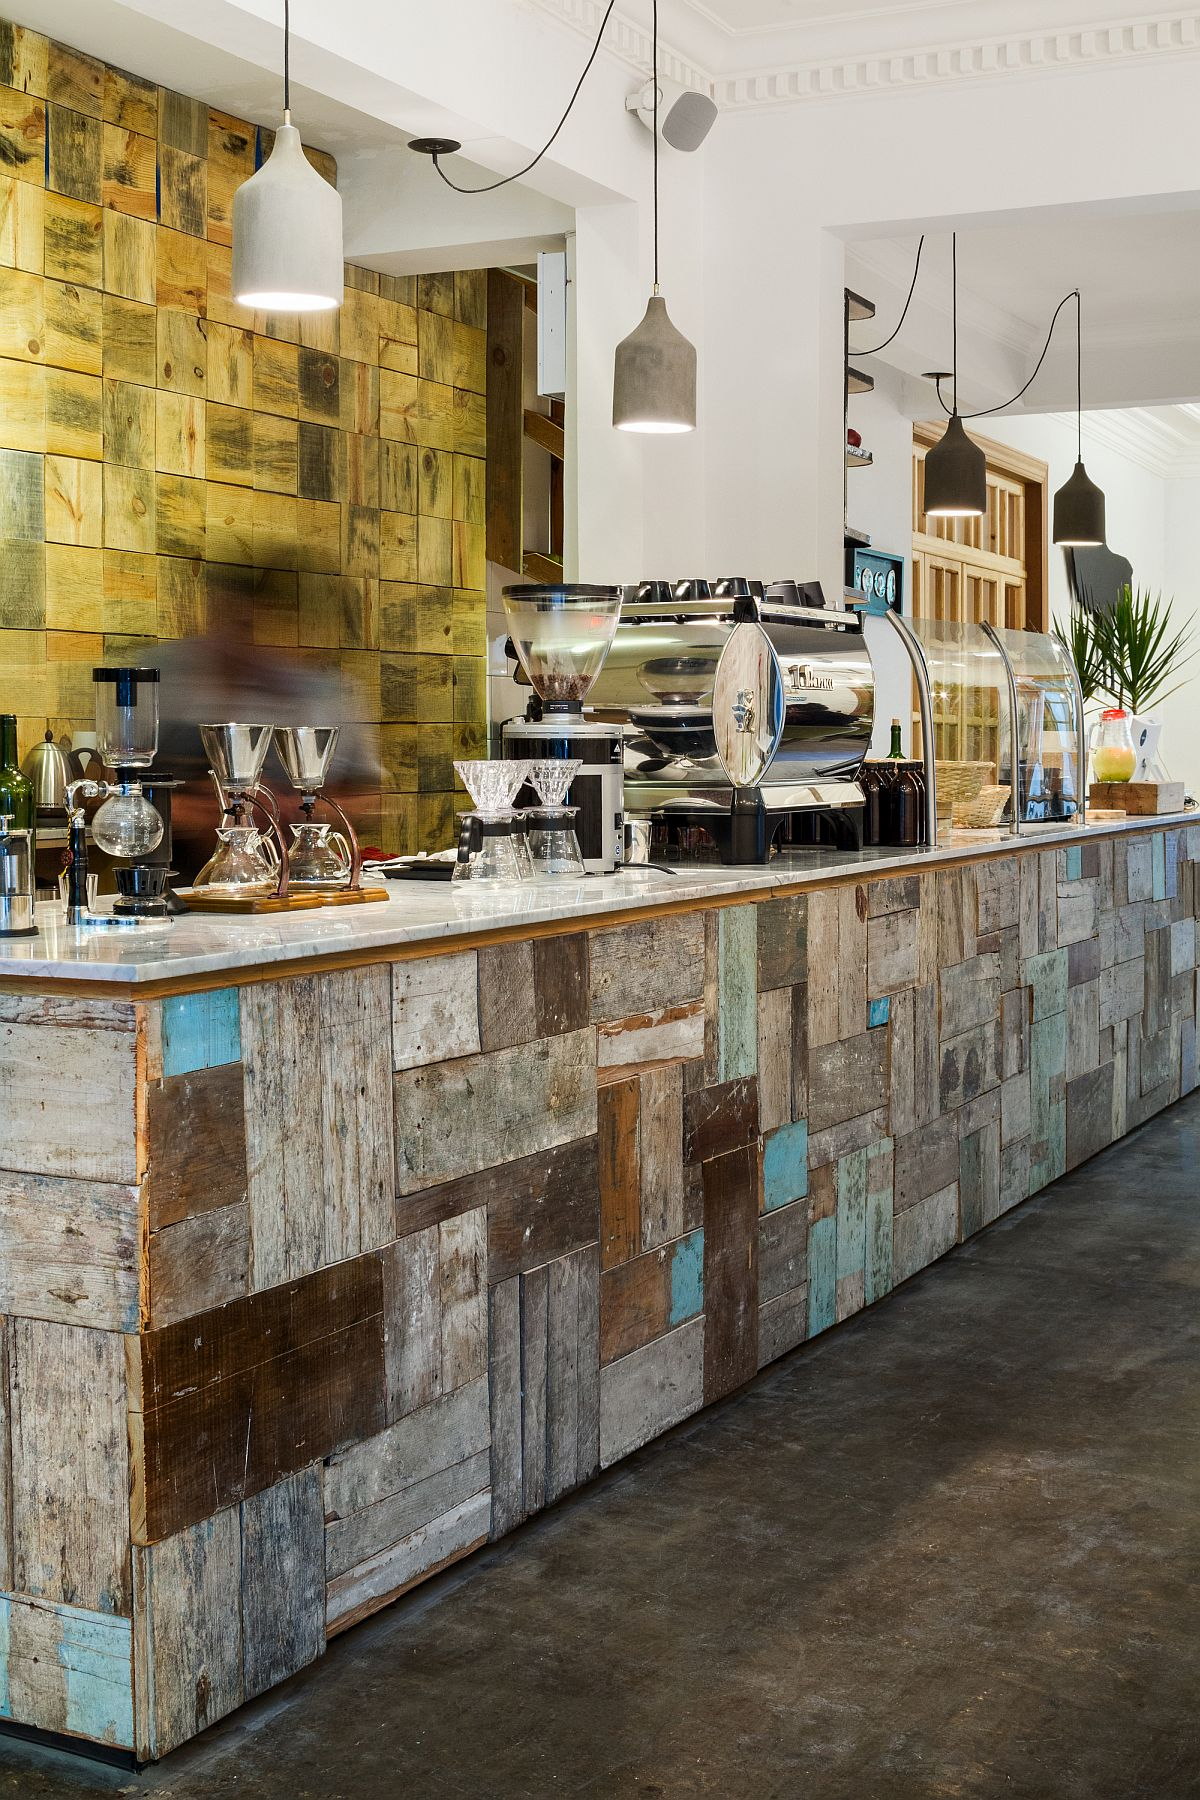 Interior of the coffee house uses reclaimed materials and colorful tiles